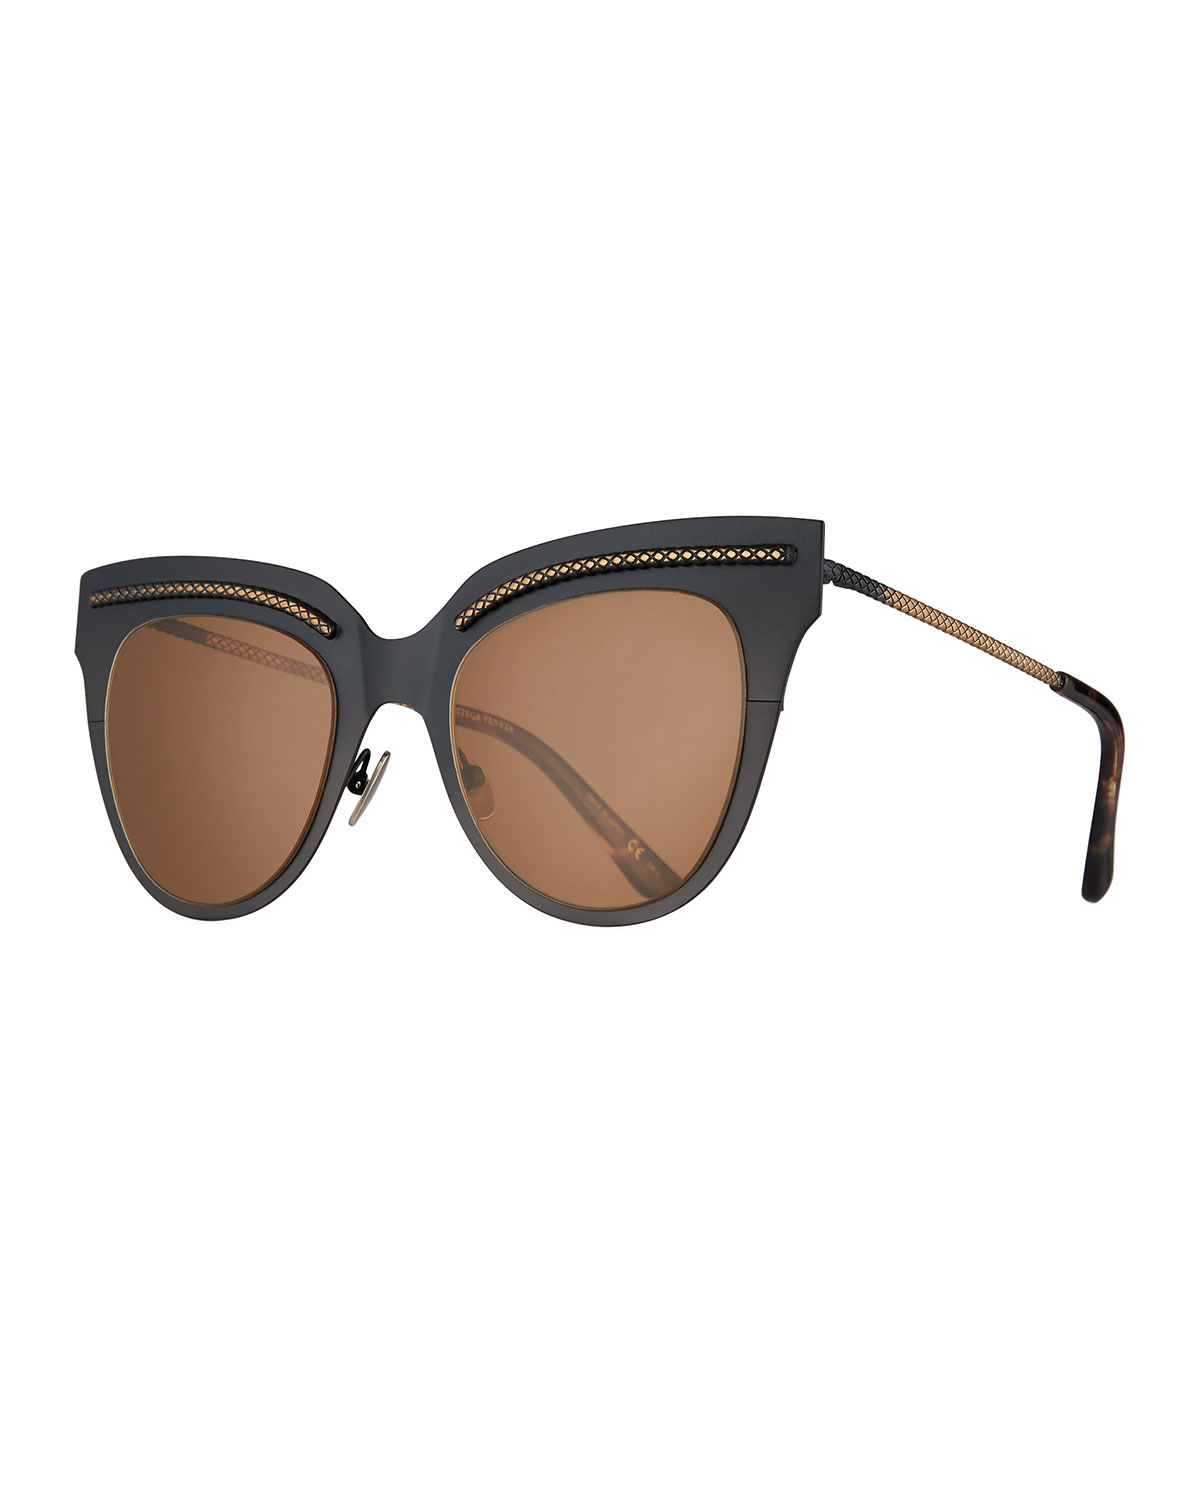 4e155b8b5 Bottega Veneta Metal Intrecciato Cat-Eye Sunglasses, Black | Neiman ...